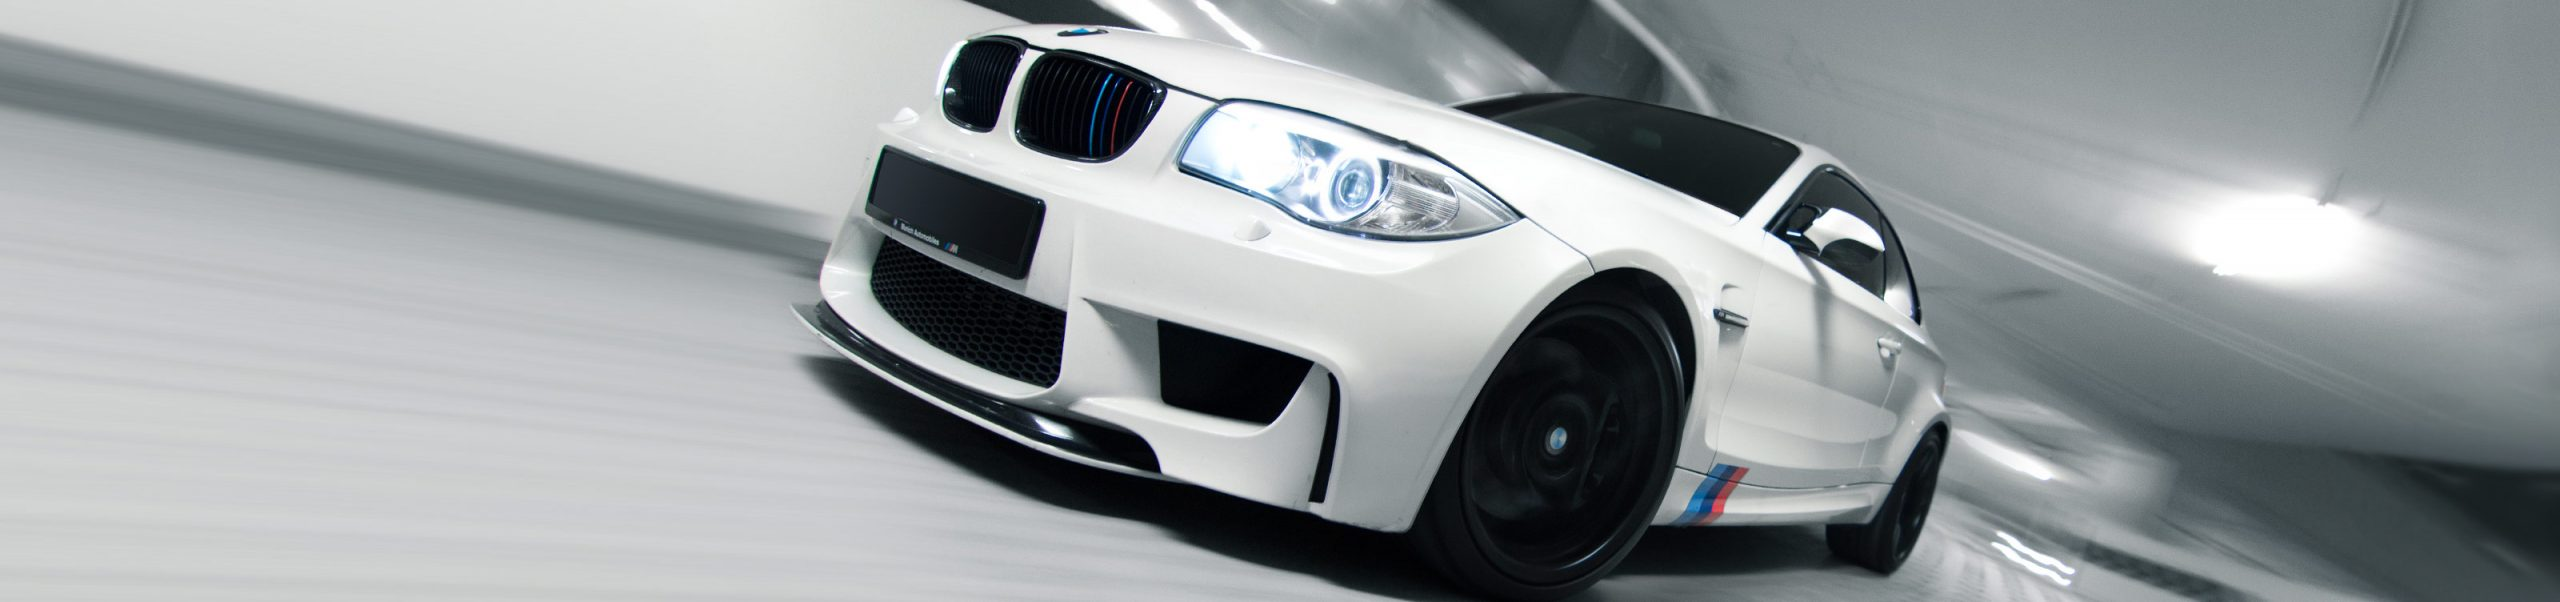 BMW Tuning & Aftermarket Performance Parts